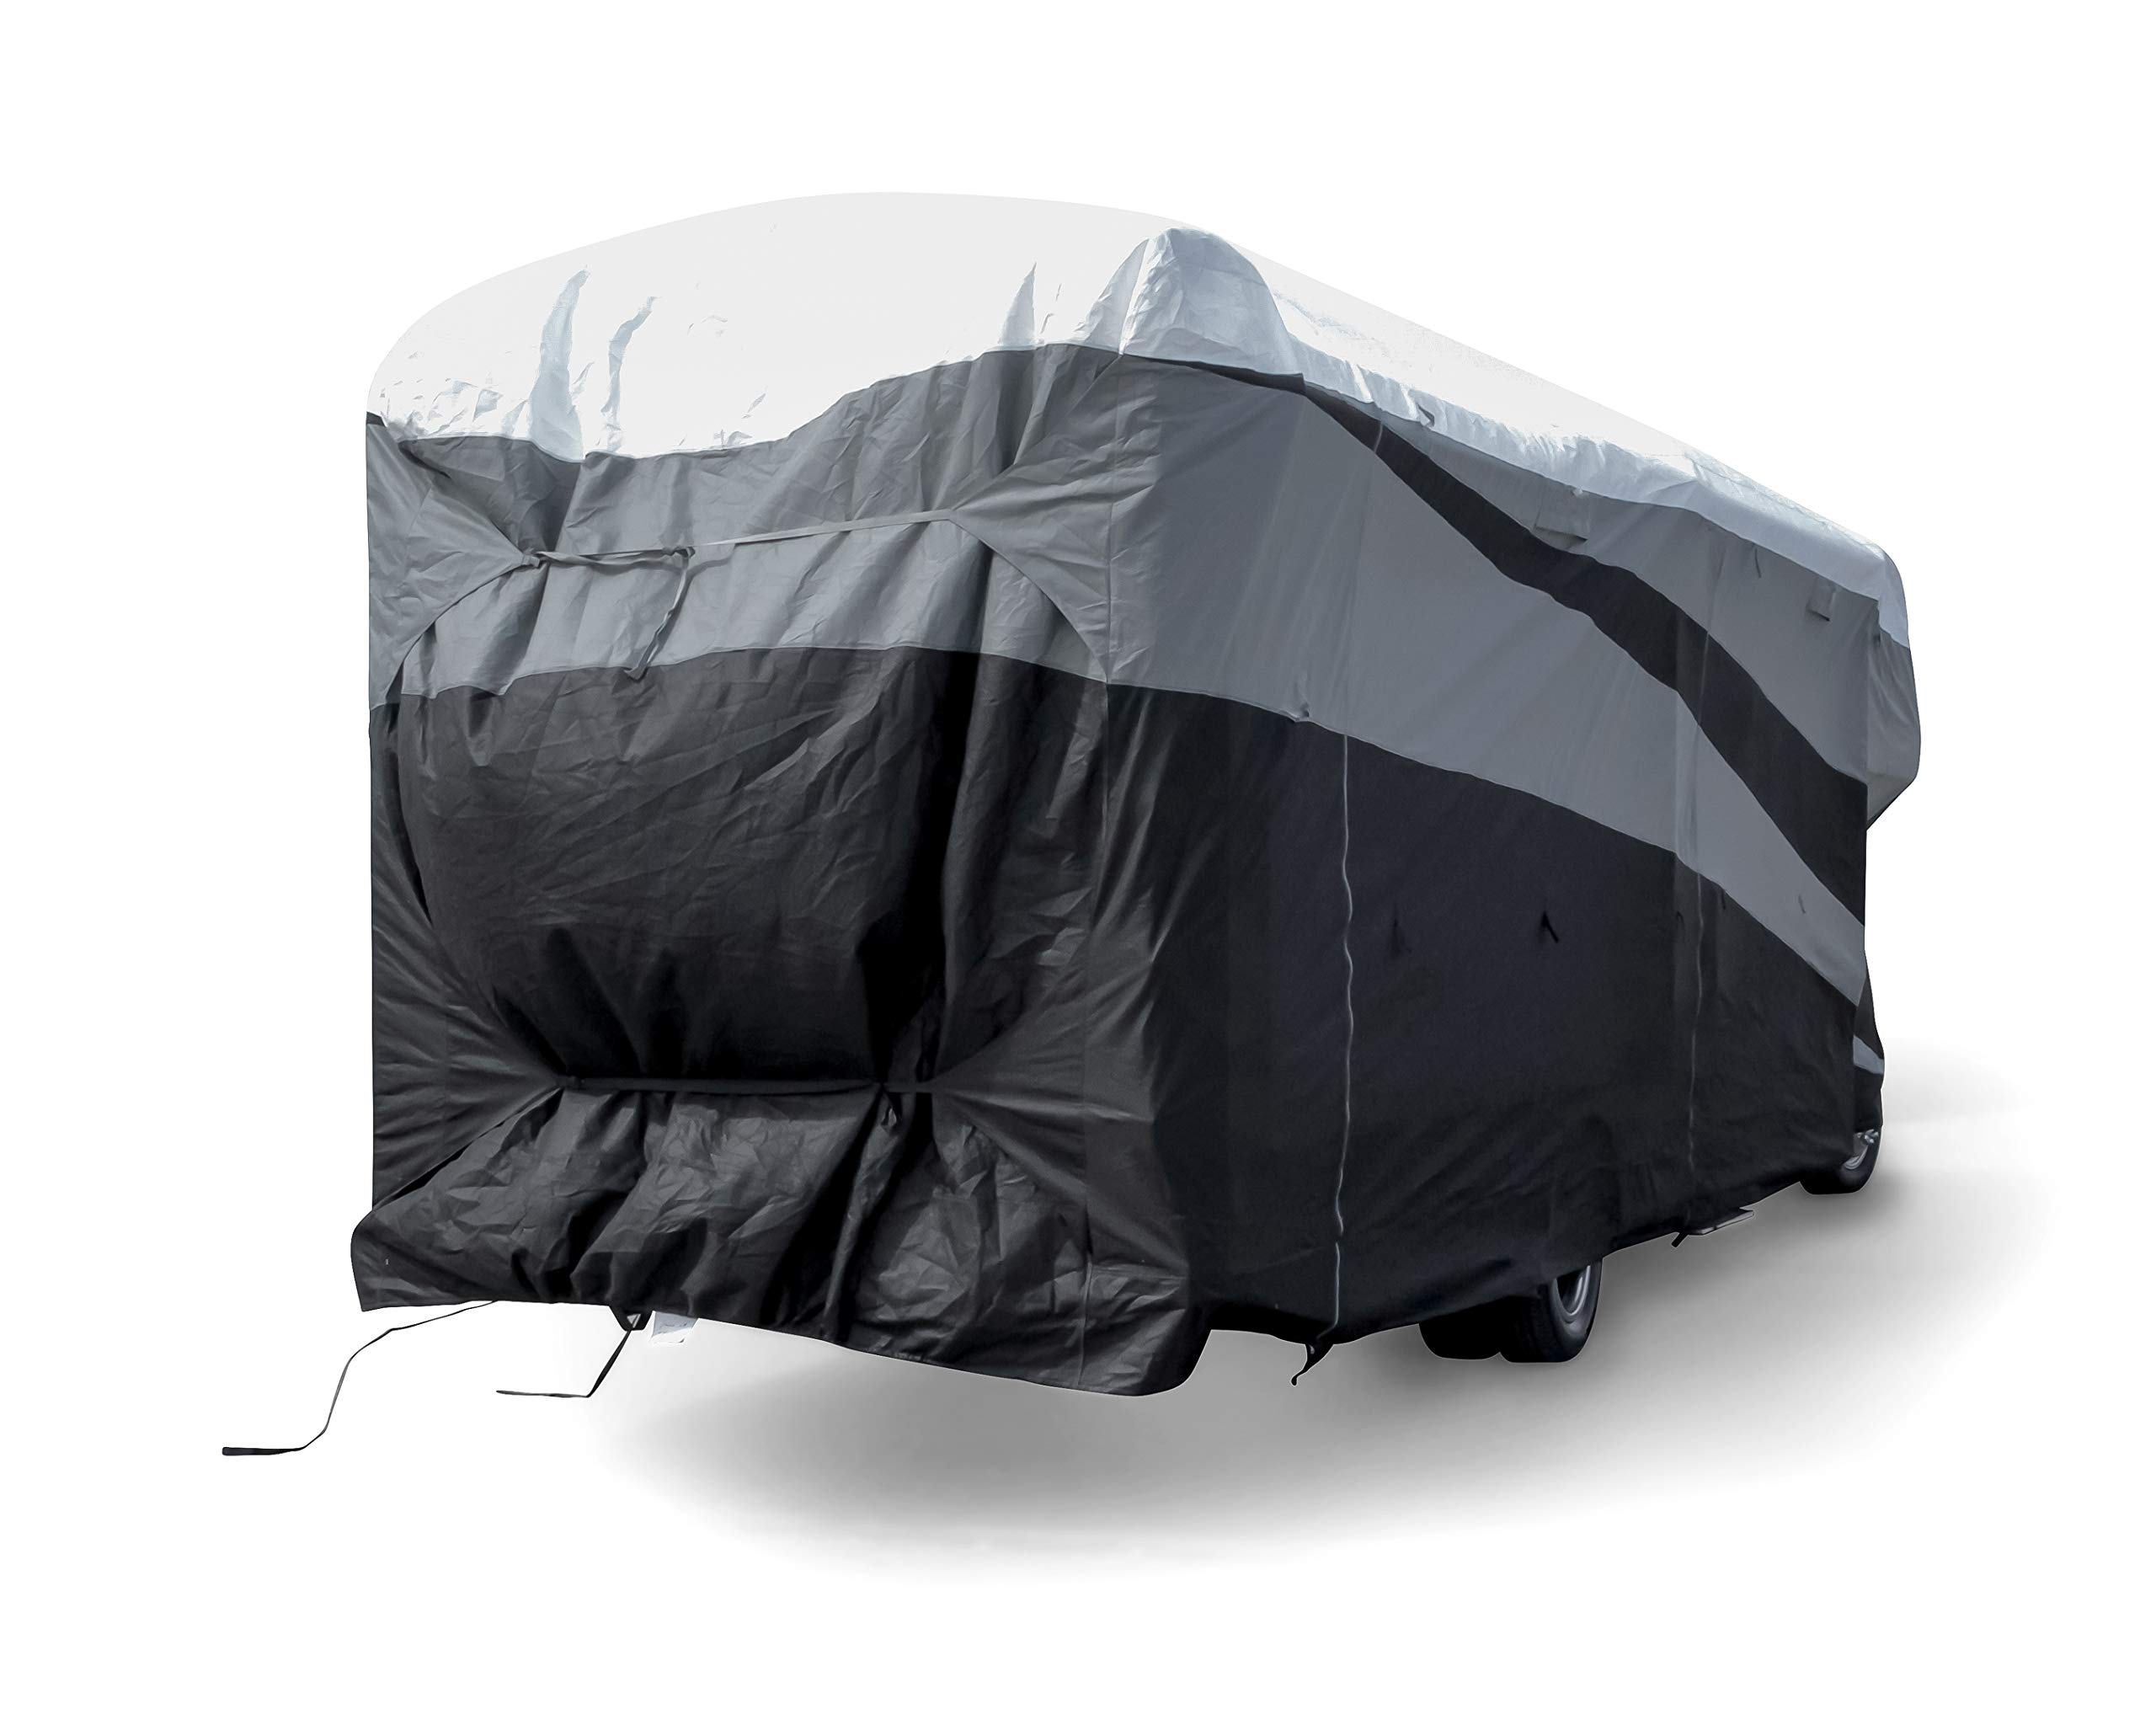 Camco ULTRAGuard Supreme Cover-Extremely Durable Design Fits Class C Model RVs 23' -26', Weatherproof with UV Protection and Dupont Tyvek Top (56114) by Camco (Image #3)